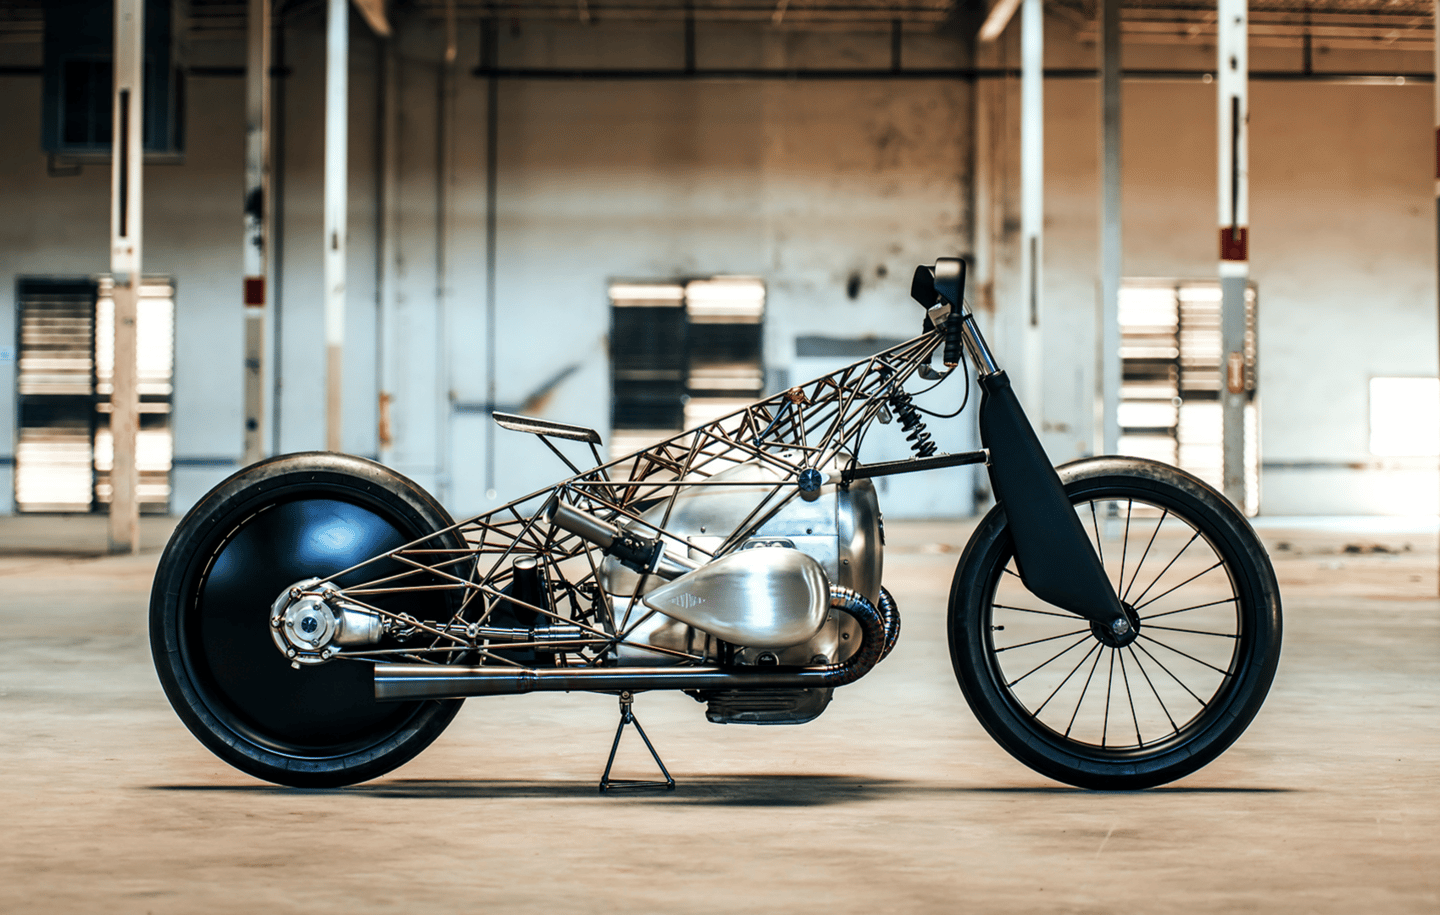 Like a skeletal ghost bike, Revival's Birdcage is built around a mystery motor that heralds a new long-stroke BMW engine platform